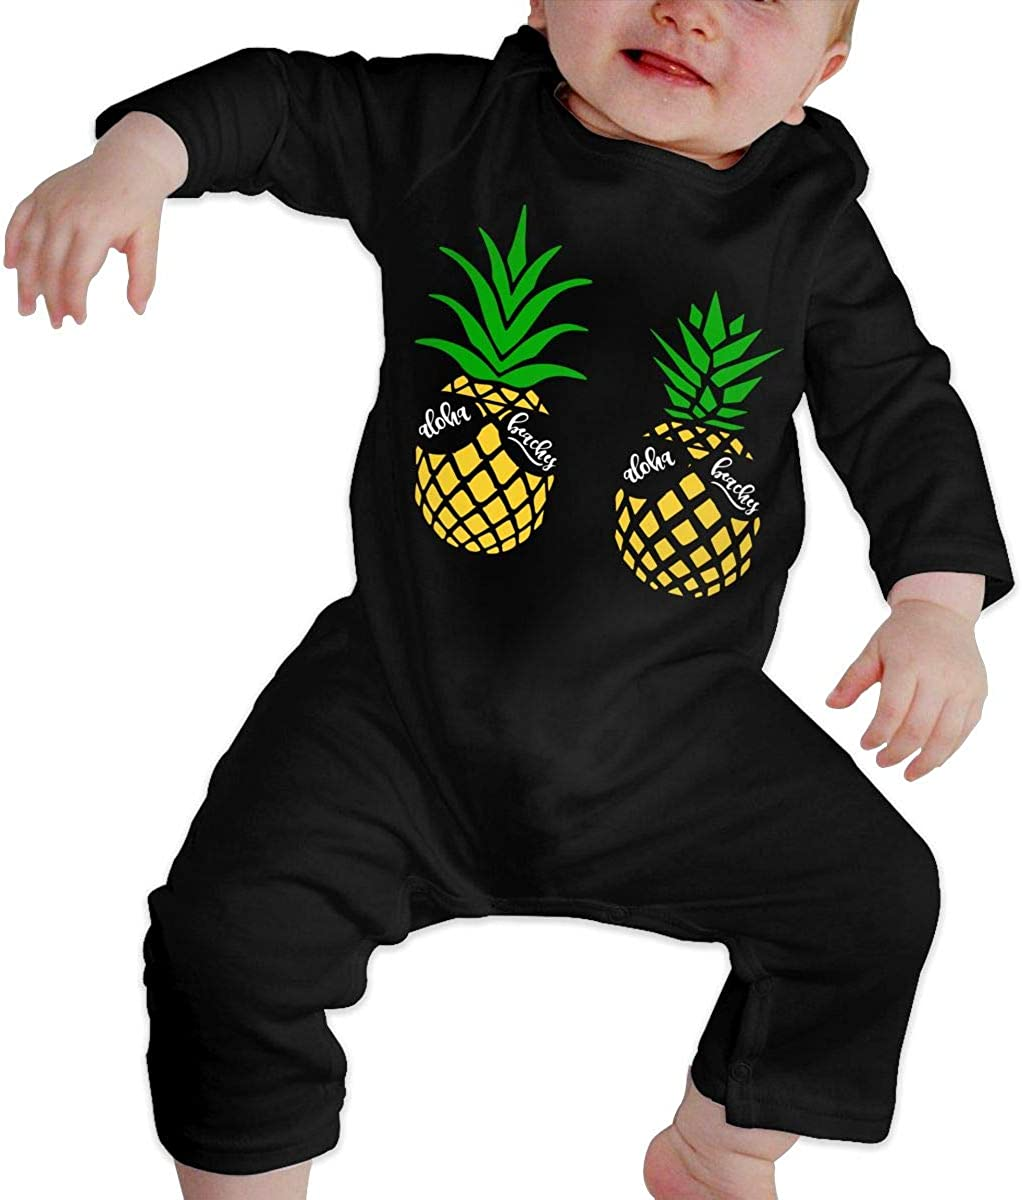 Aloha Beaches Pineapple Printed Newborn Baby One-Piece Suit Long Sleeve Rompers Black